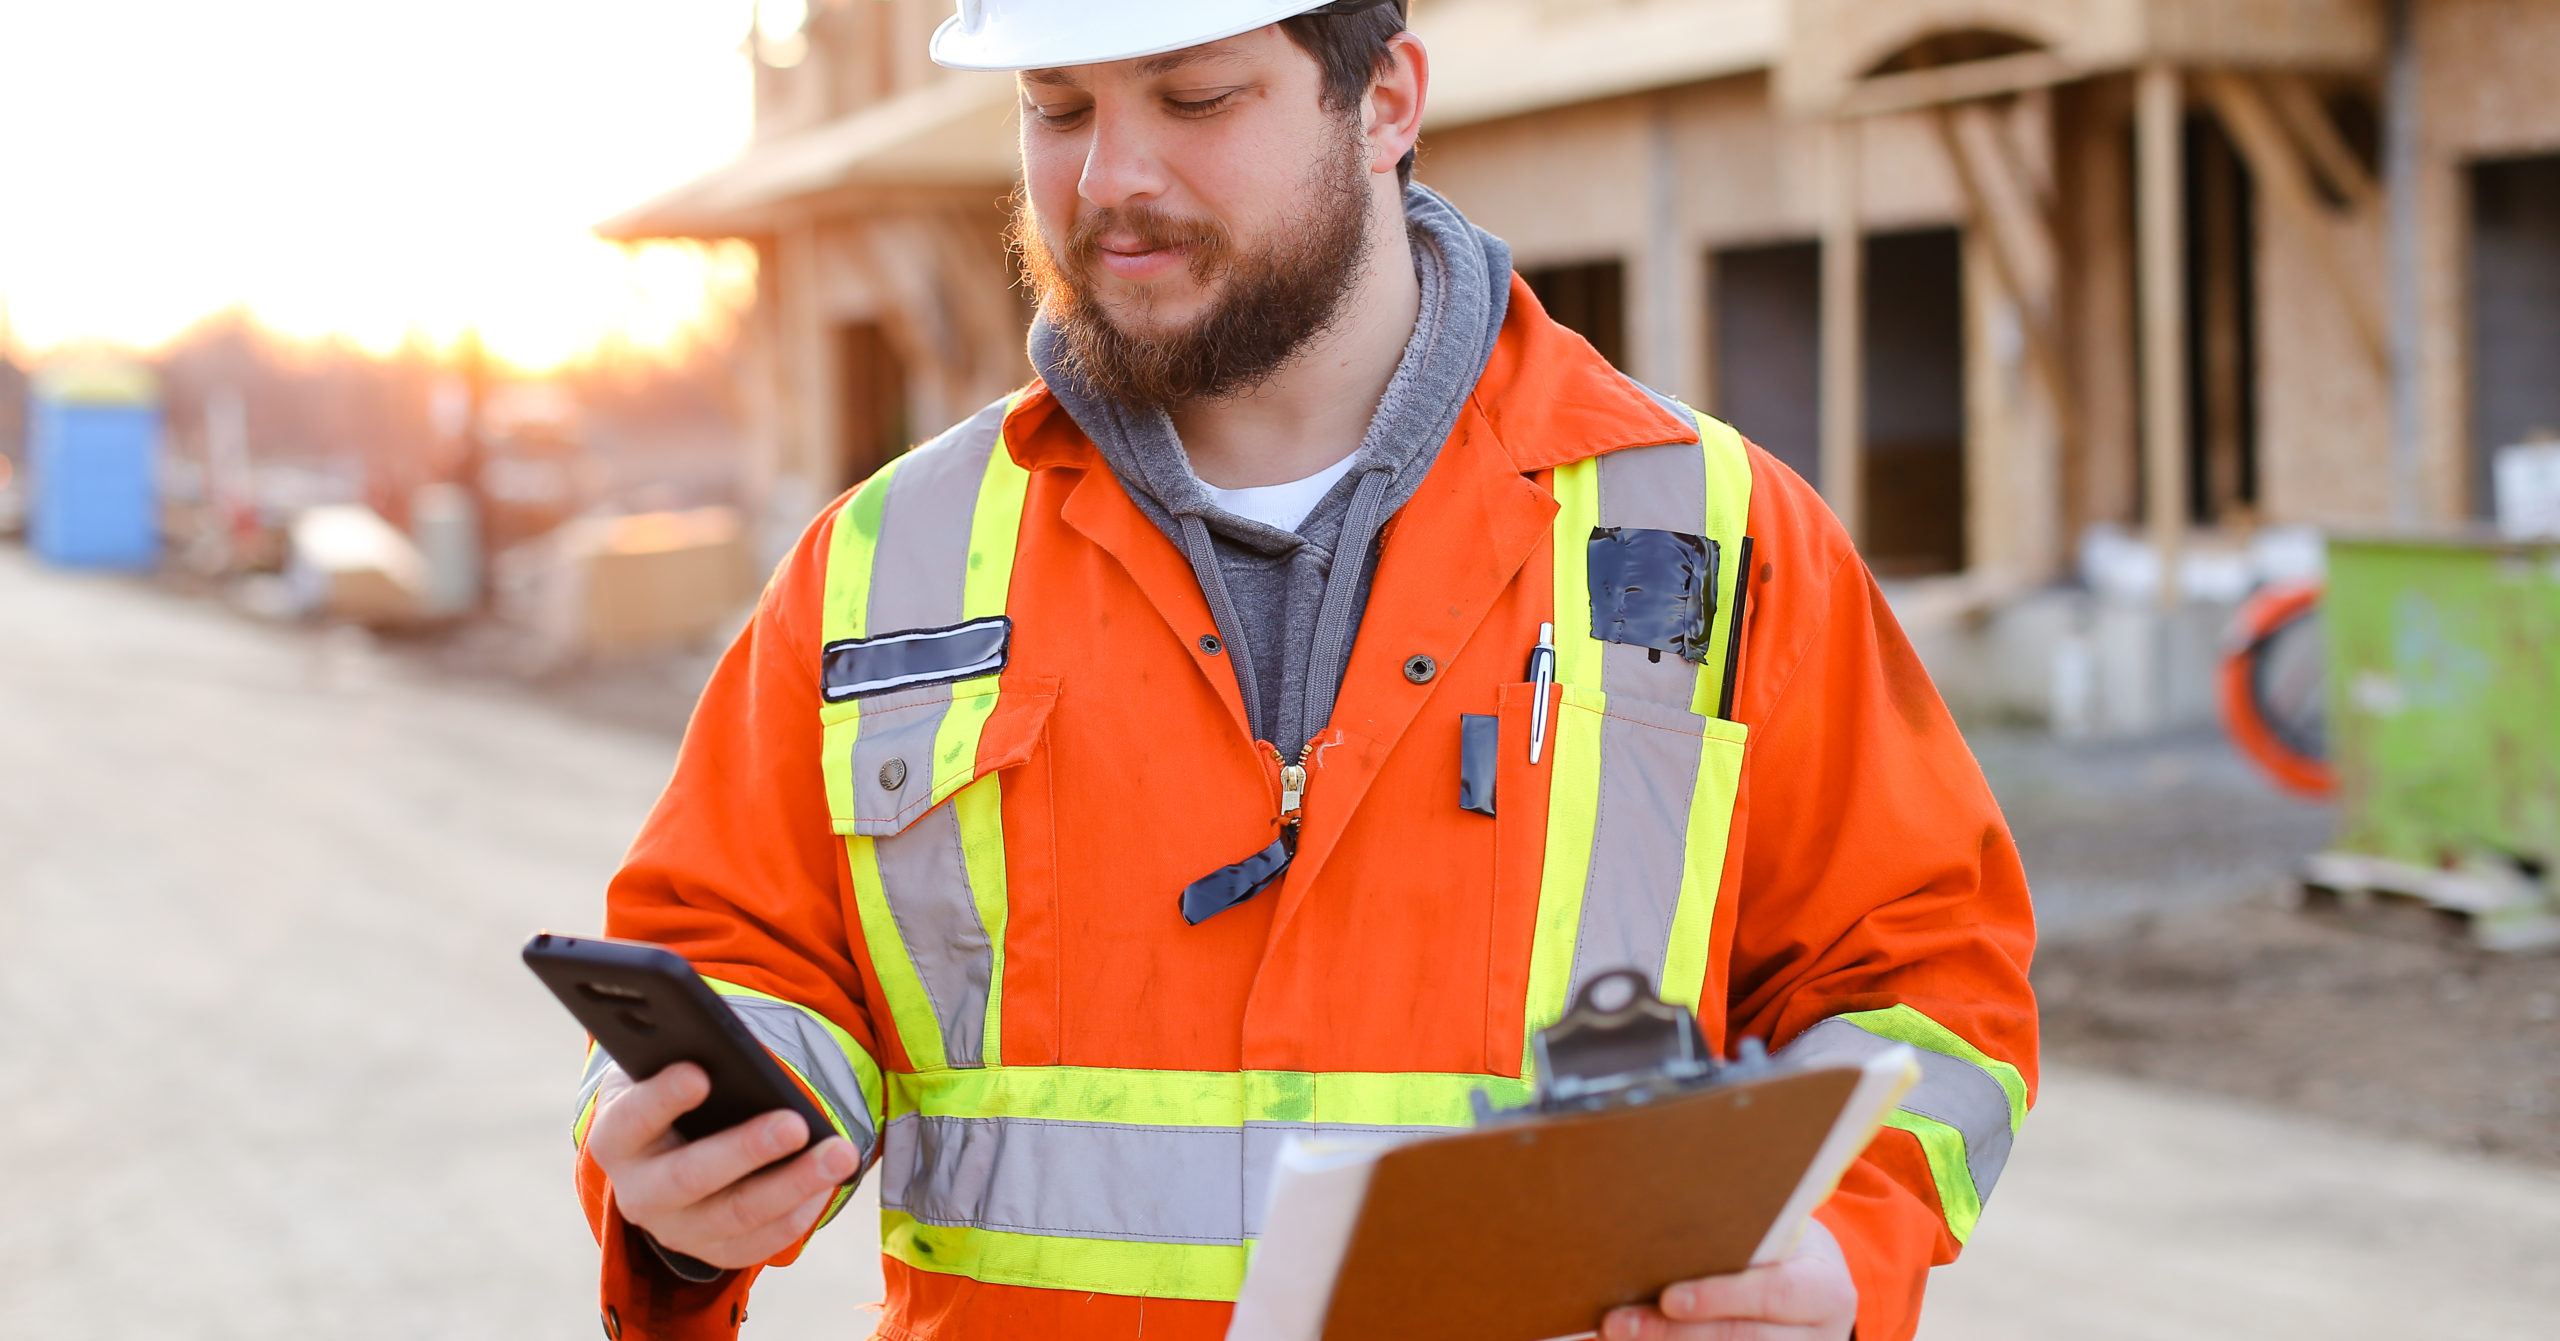 A builder is holding and looking at a smart phone in his right hand while holding a clipboard in his other hand.